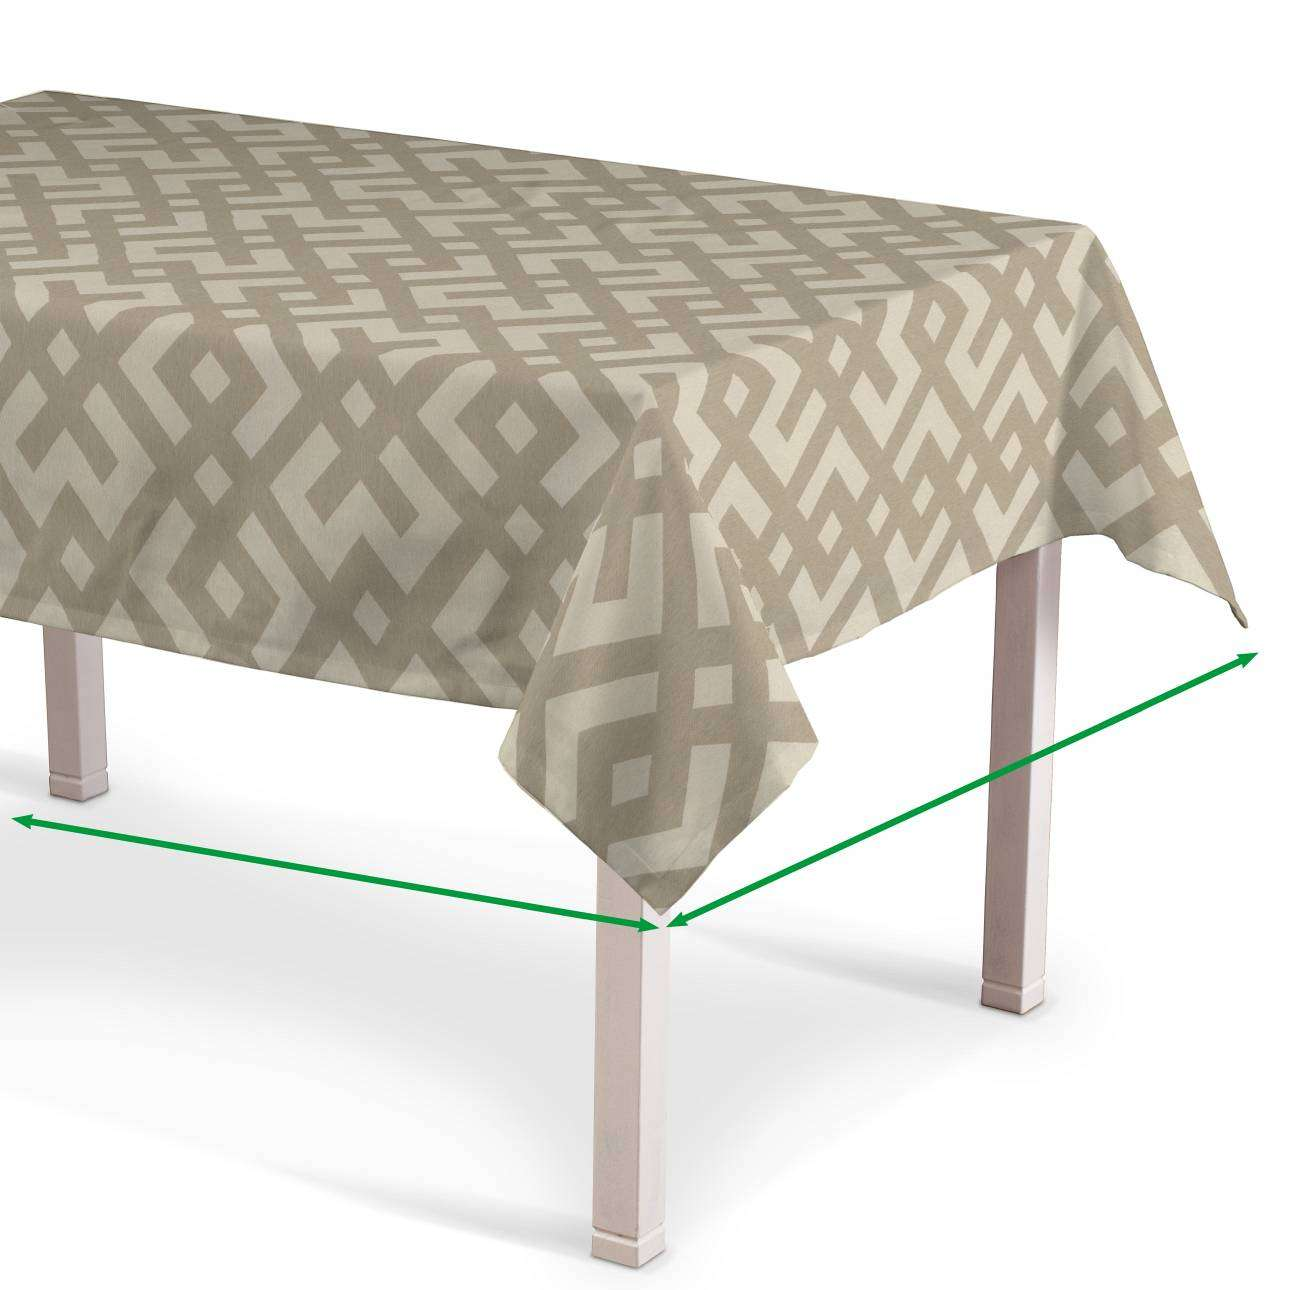 Rectangular tablecloth in collection Rustica, fabric: 140-95